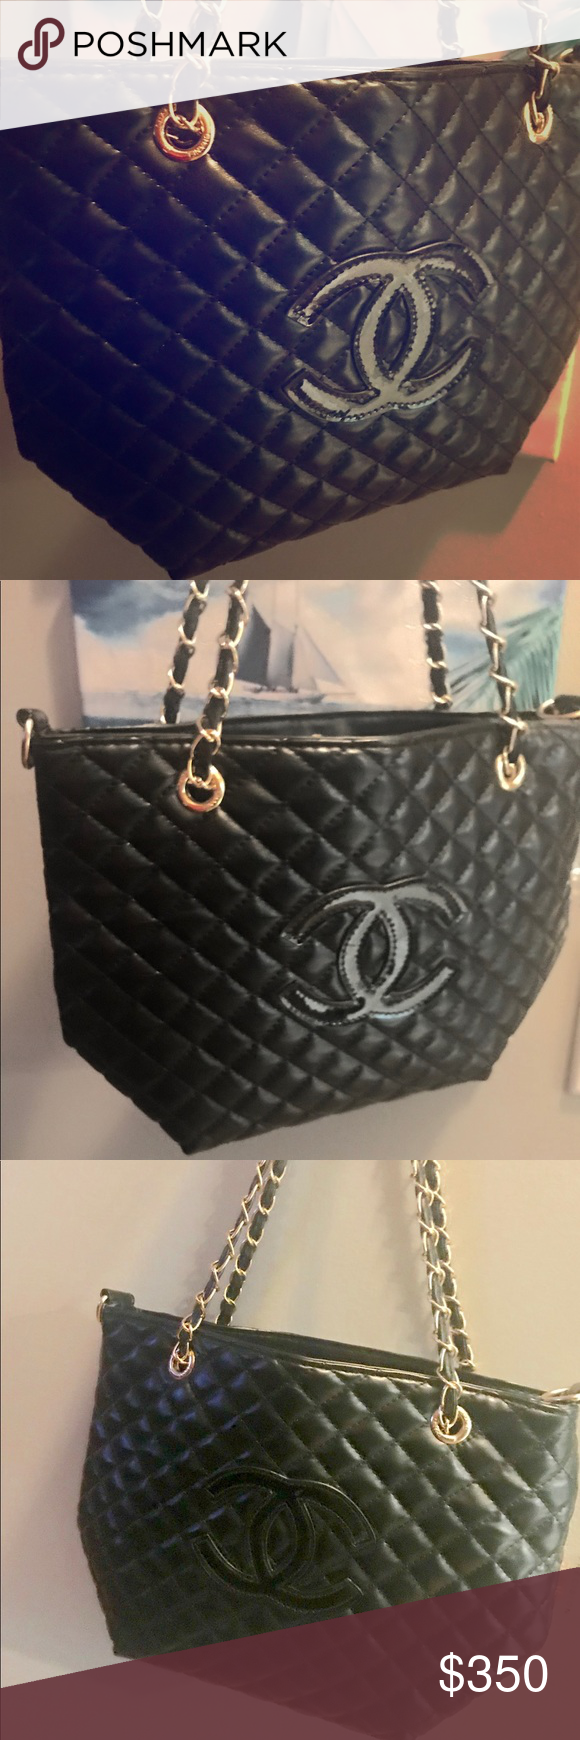 c987a2f6473d NEW CHANEL VIP Precision Black Quilted Beaute Bag Brand New 100% Authentic  Chanel VIP Bag